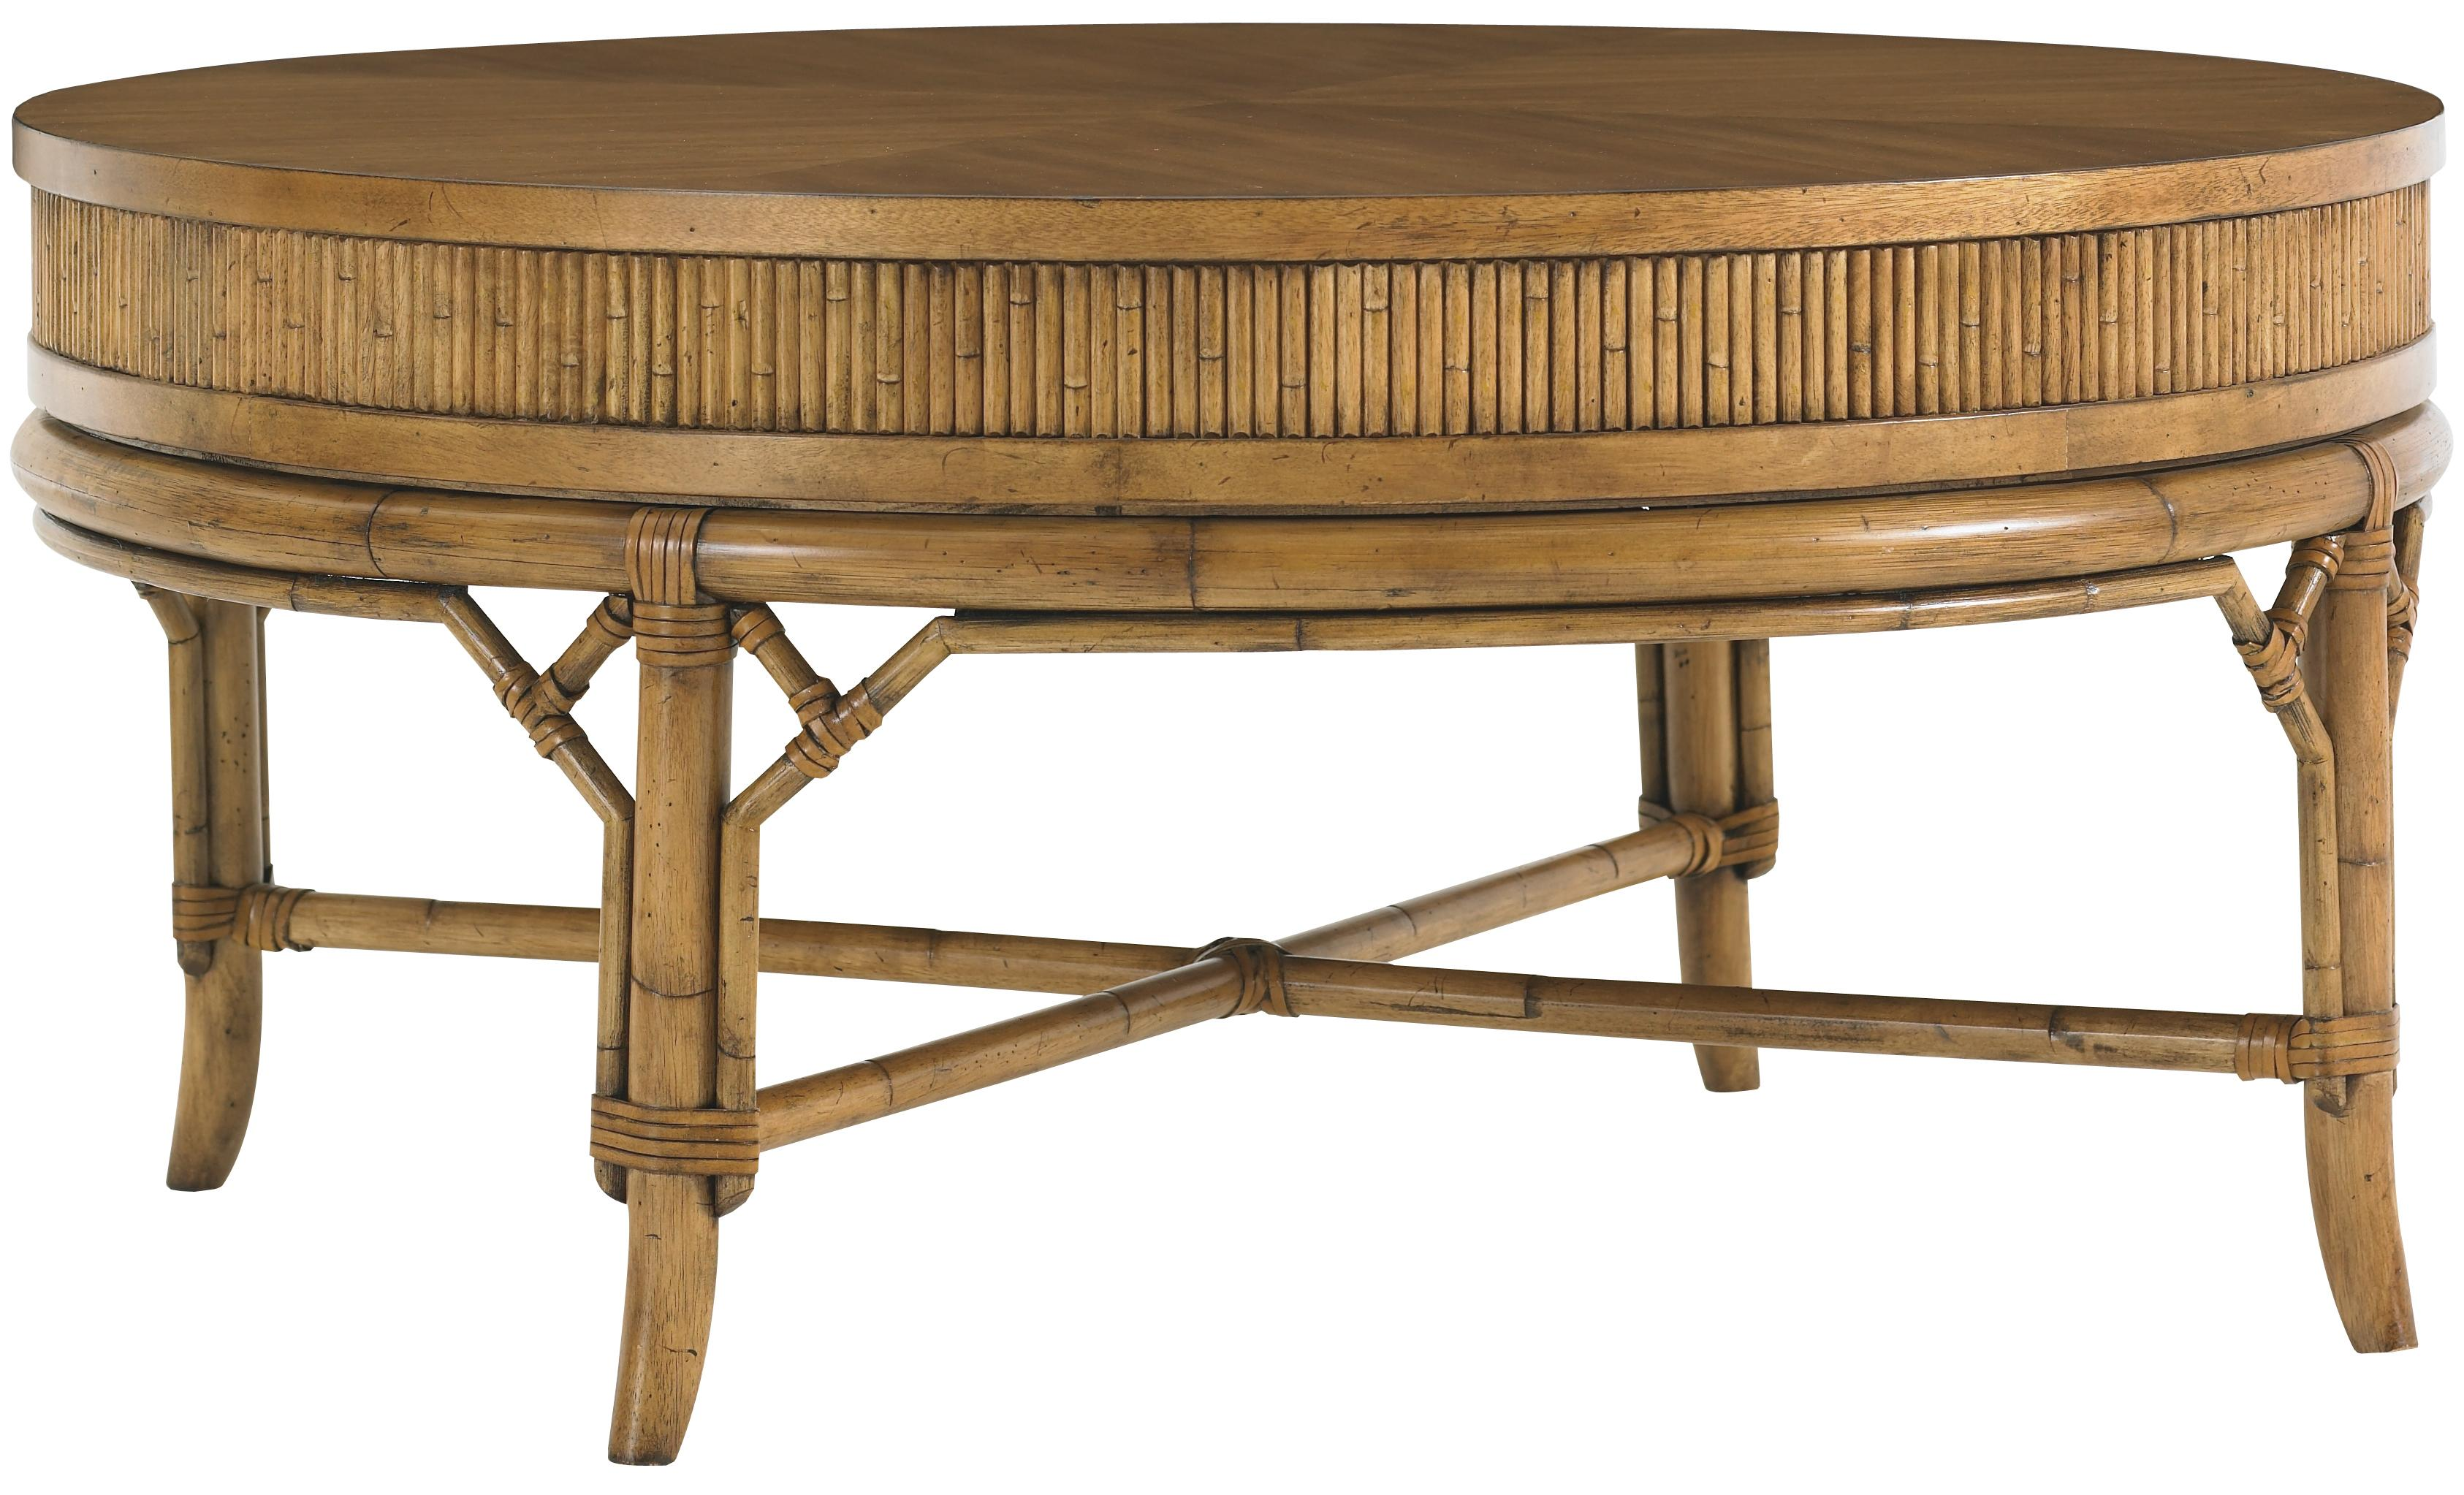 Tommy Bahama Home Beach House Oyster Cove Round Cocktail Table - Item Number: 540-943